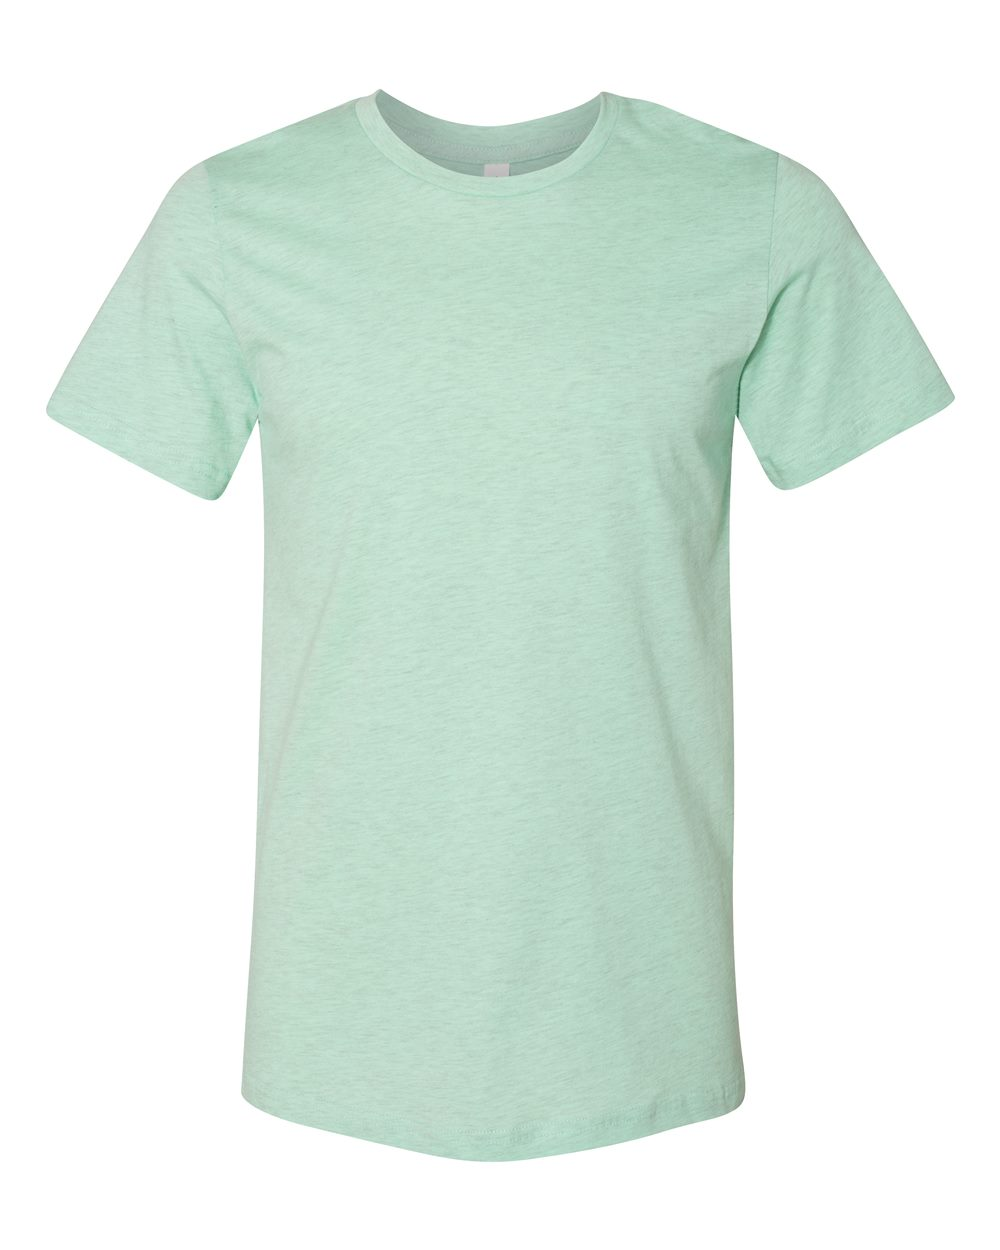 click to view Heather Prism Mint